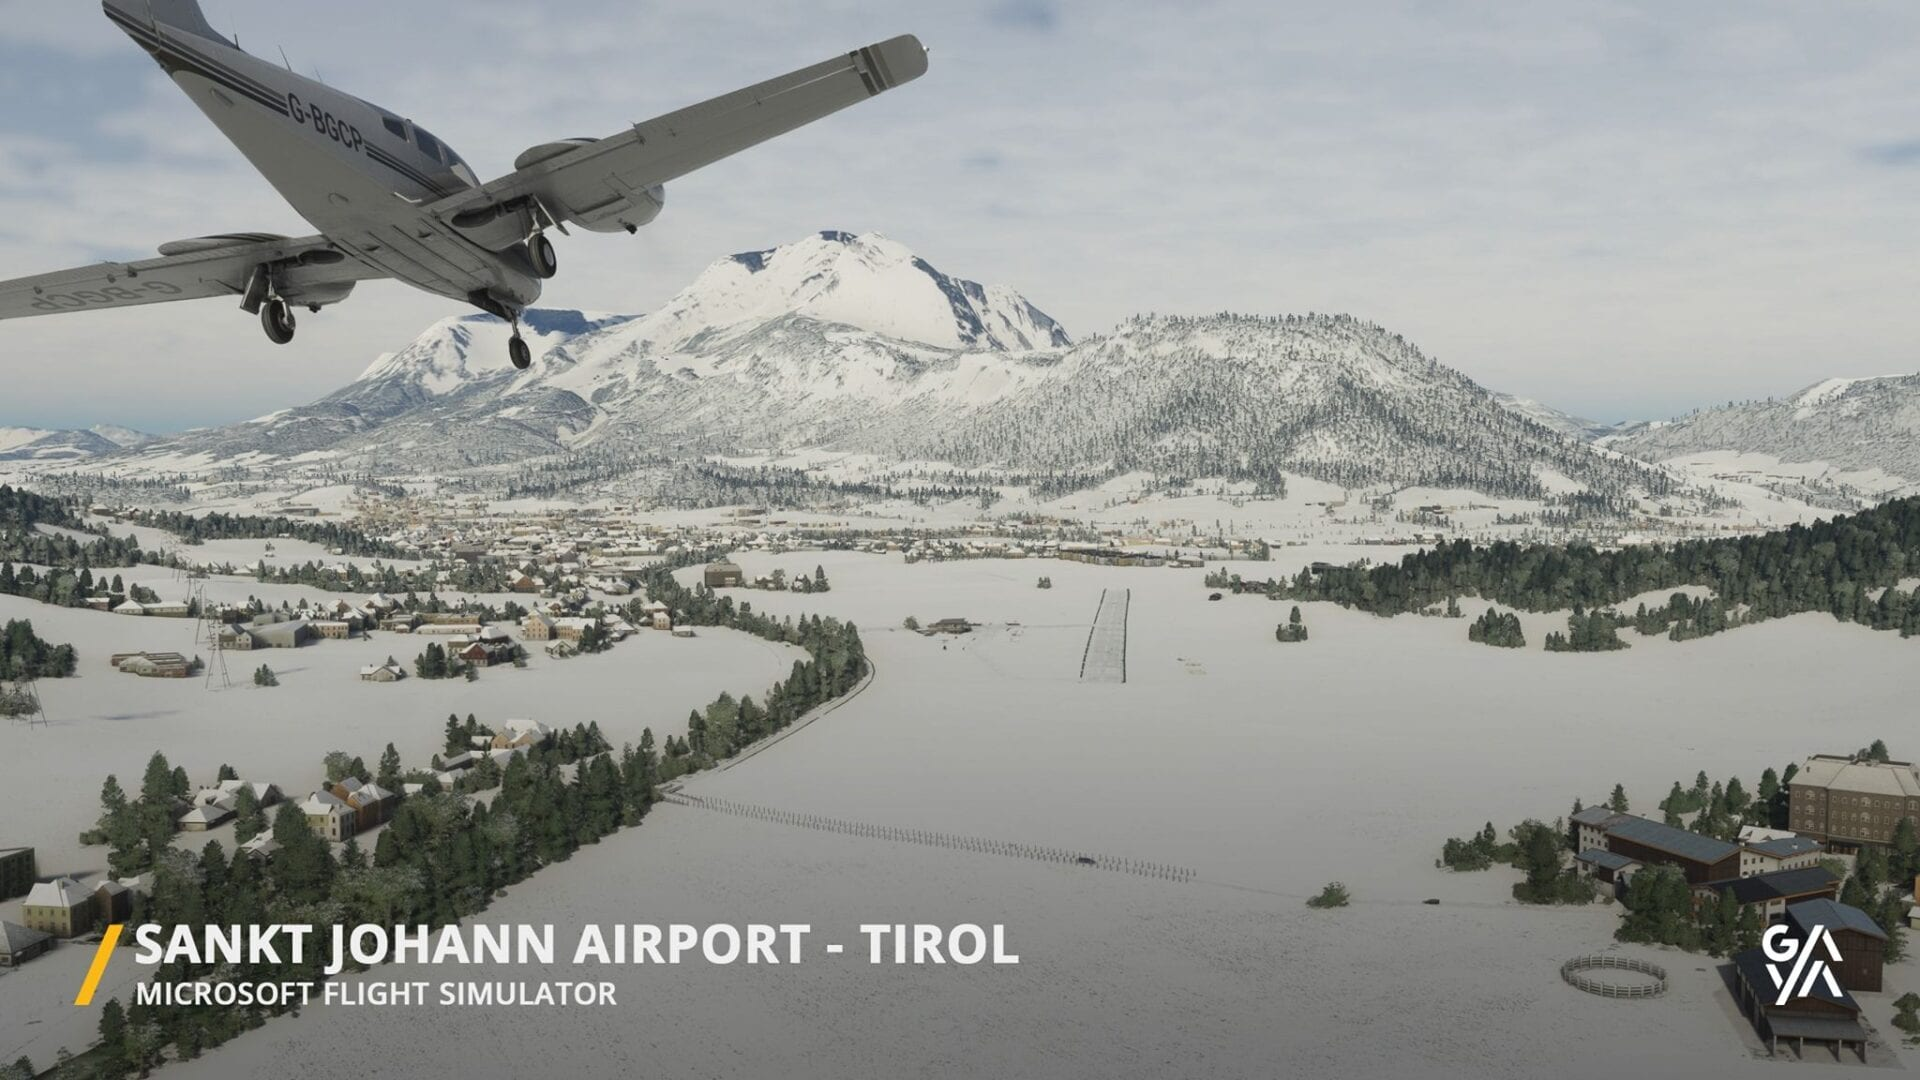 Microsoft Flight Simulator – Sankt Johann Airport Add-On Appears Charmingly Bucolic in New Trailer 1